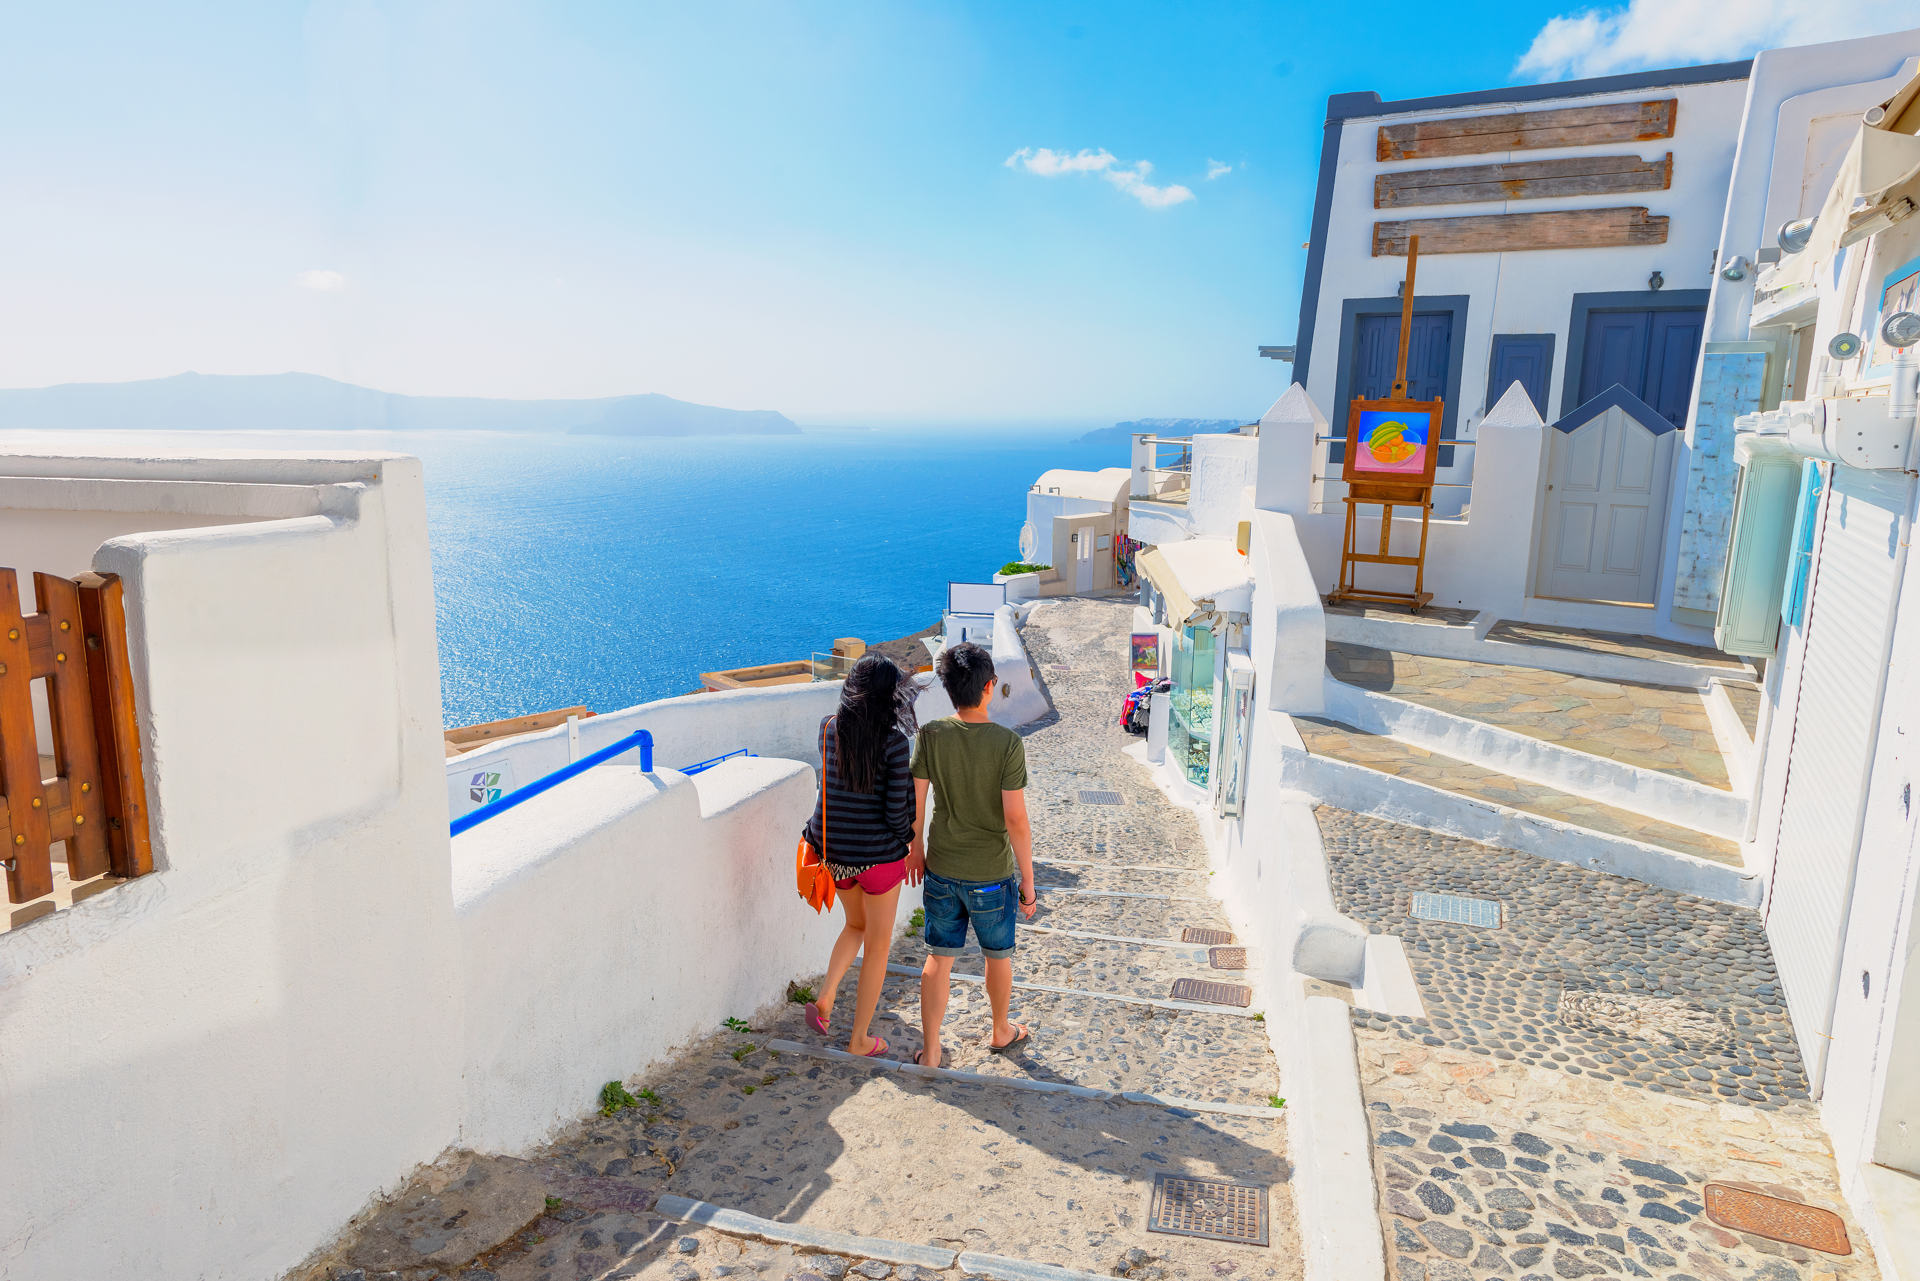 The famous island of Santorini in the Cyclades, panoramic view of traditional whitewashed houses and colorful caldera